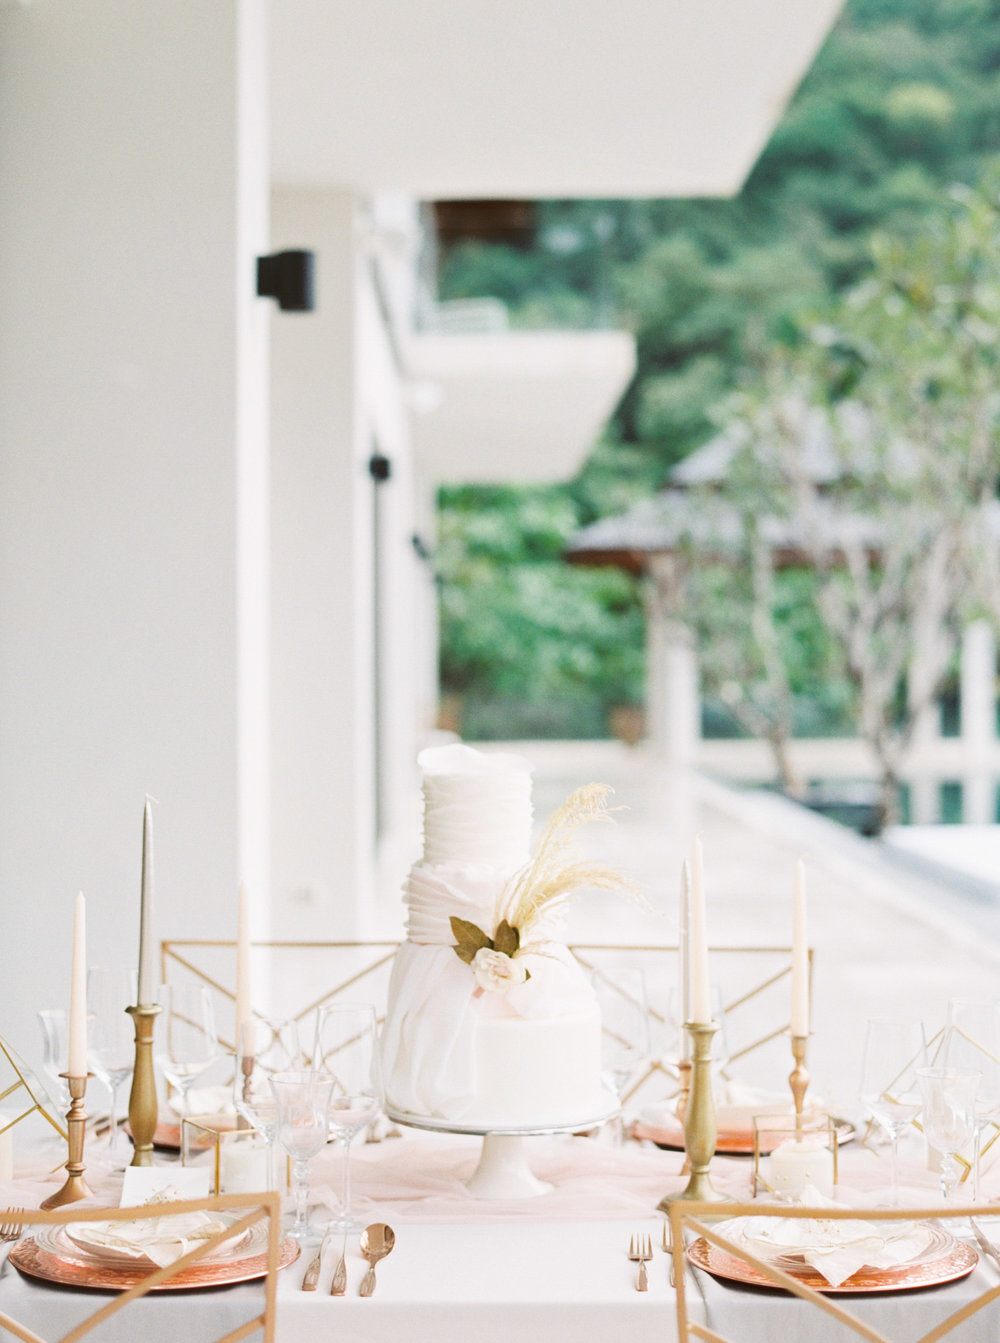 Destination Wedding Phuket Thailand Fine Art Film Photographer Sheri McMahon-00062-62.jpg